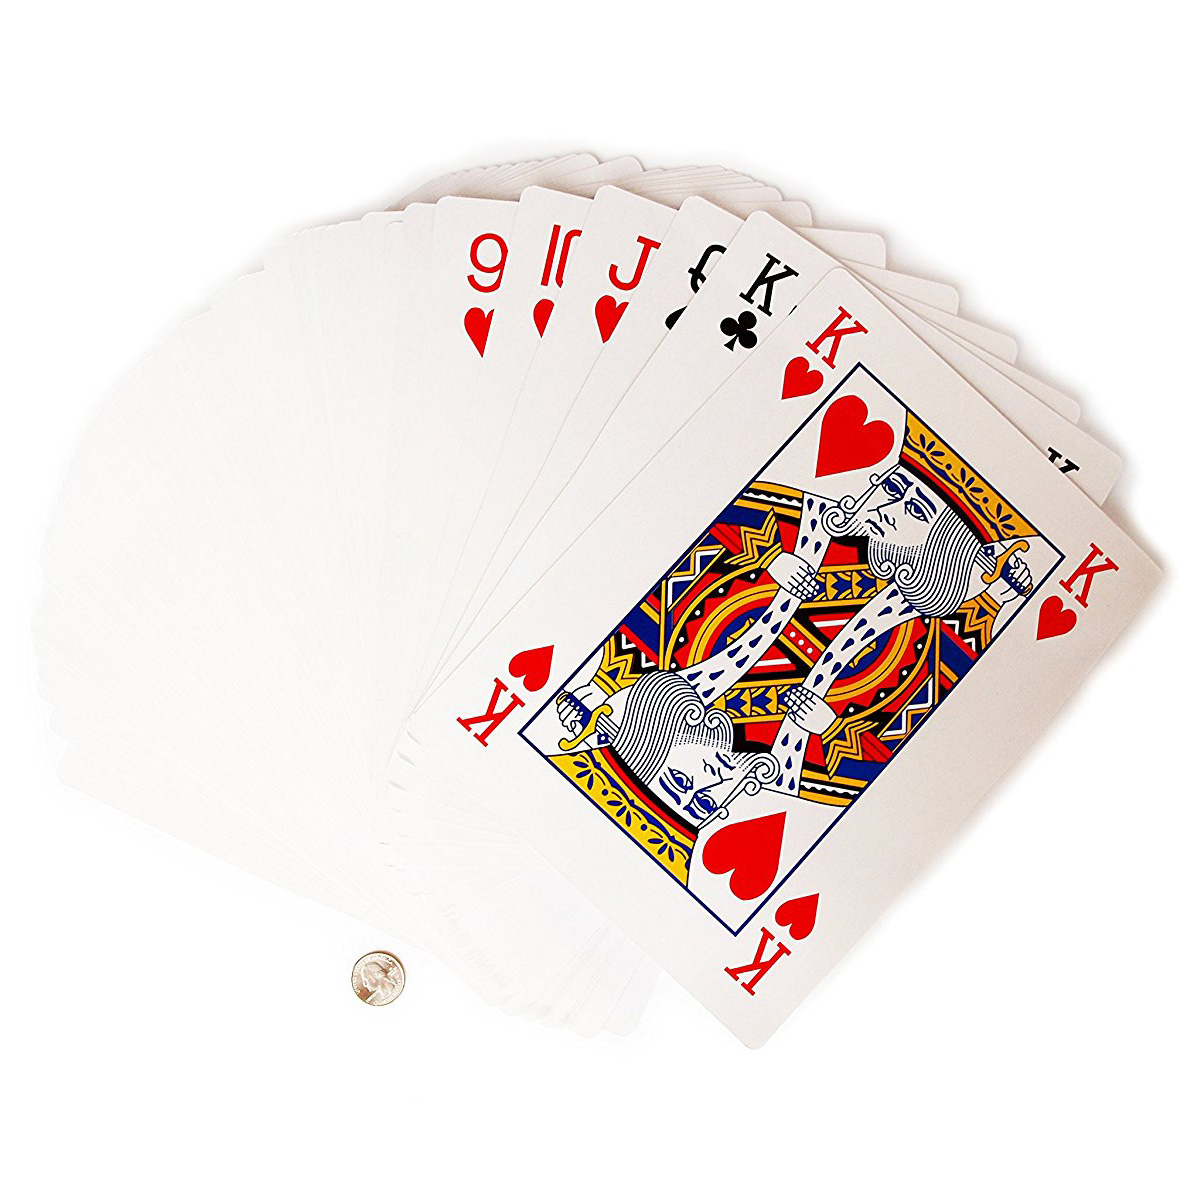 gigantic-deck-of-playing-cards-5.jpg (1200×1200)